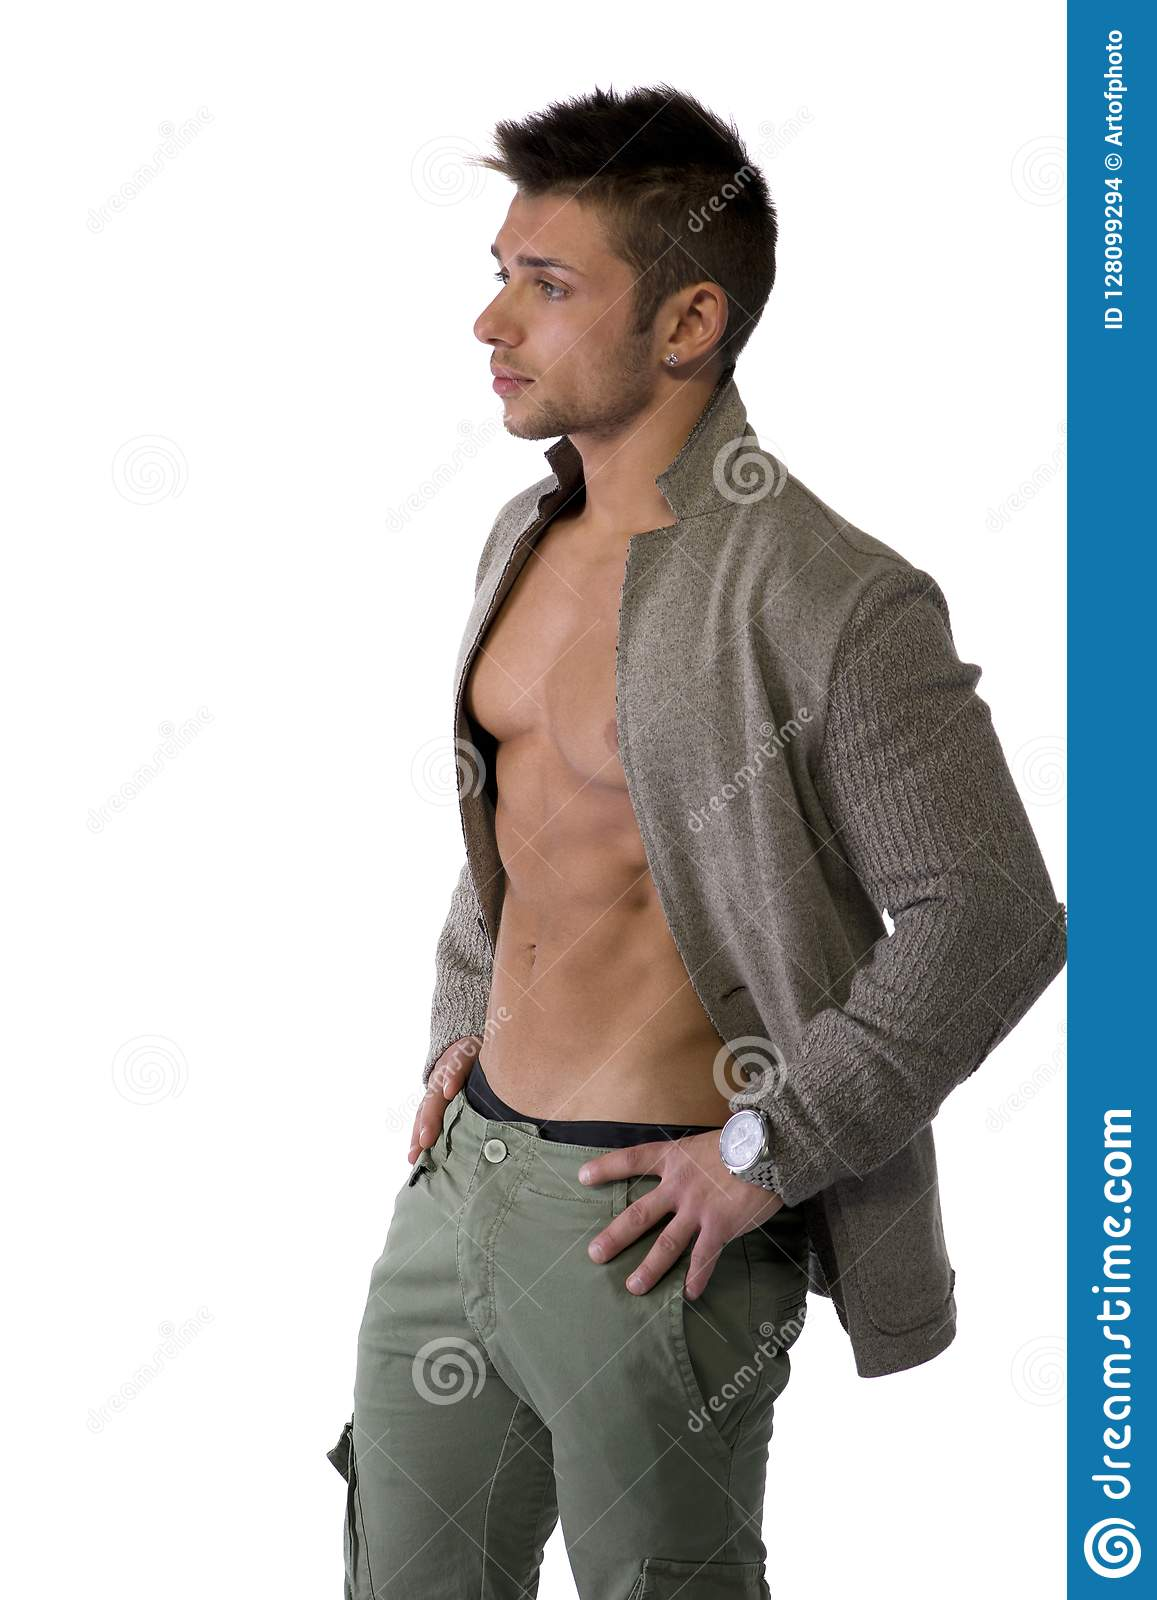 Man Pecs Muscles High Resolution Stock Photography and